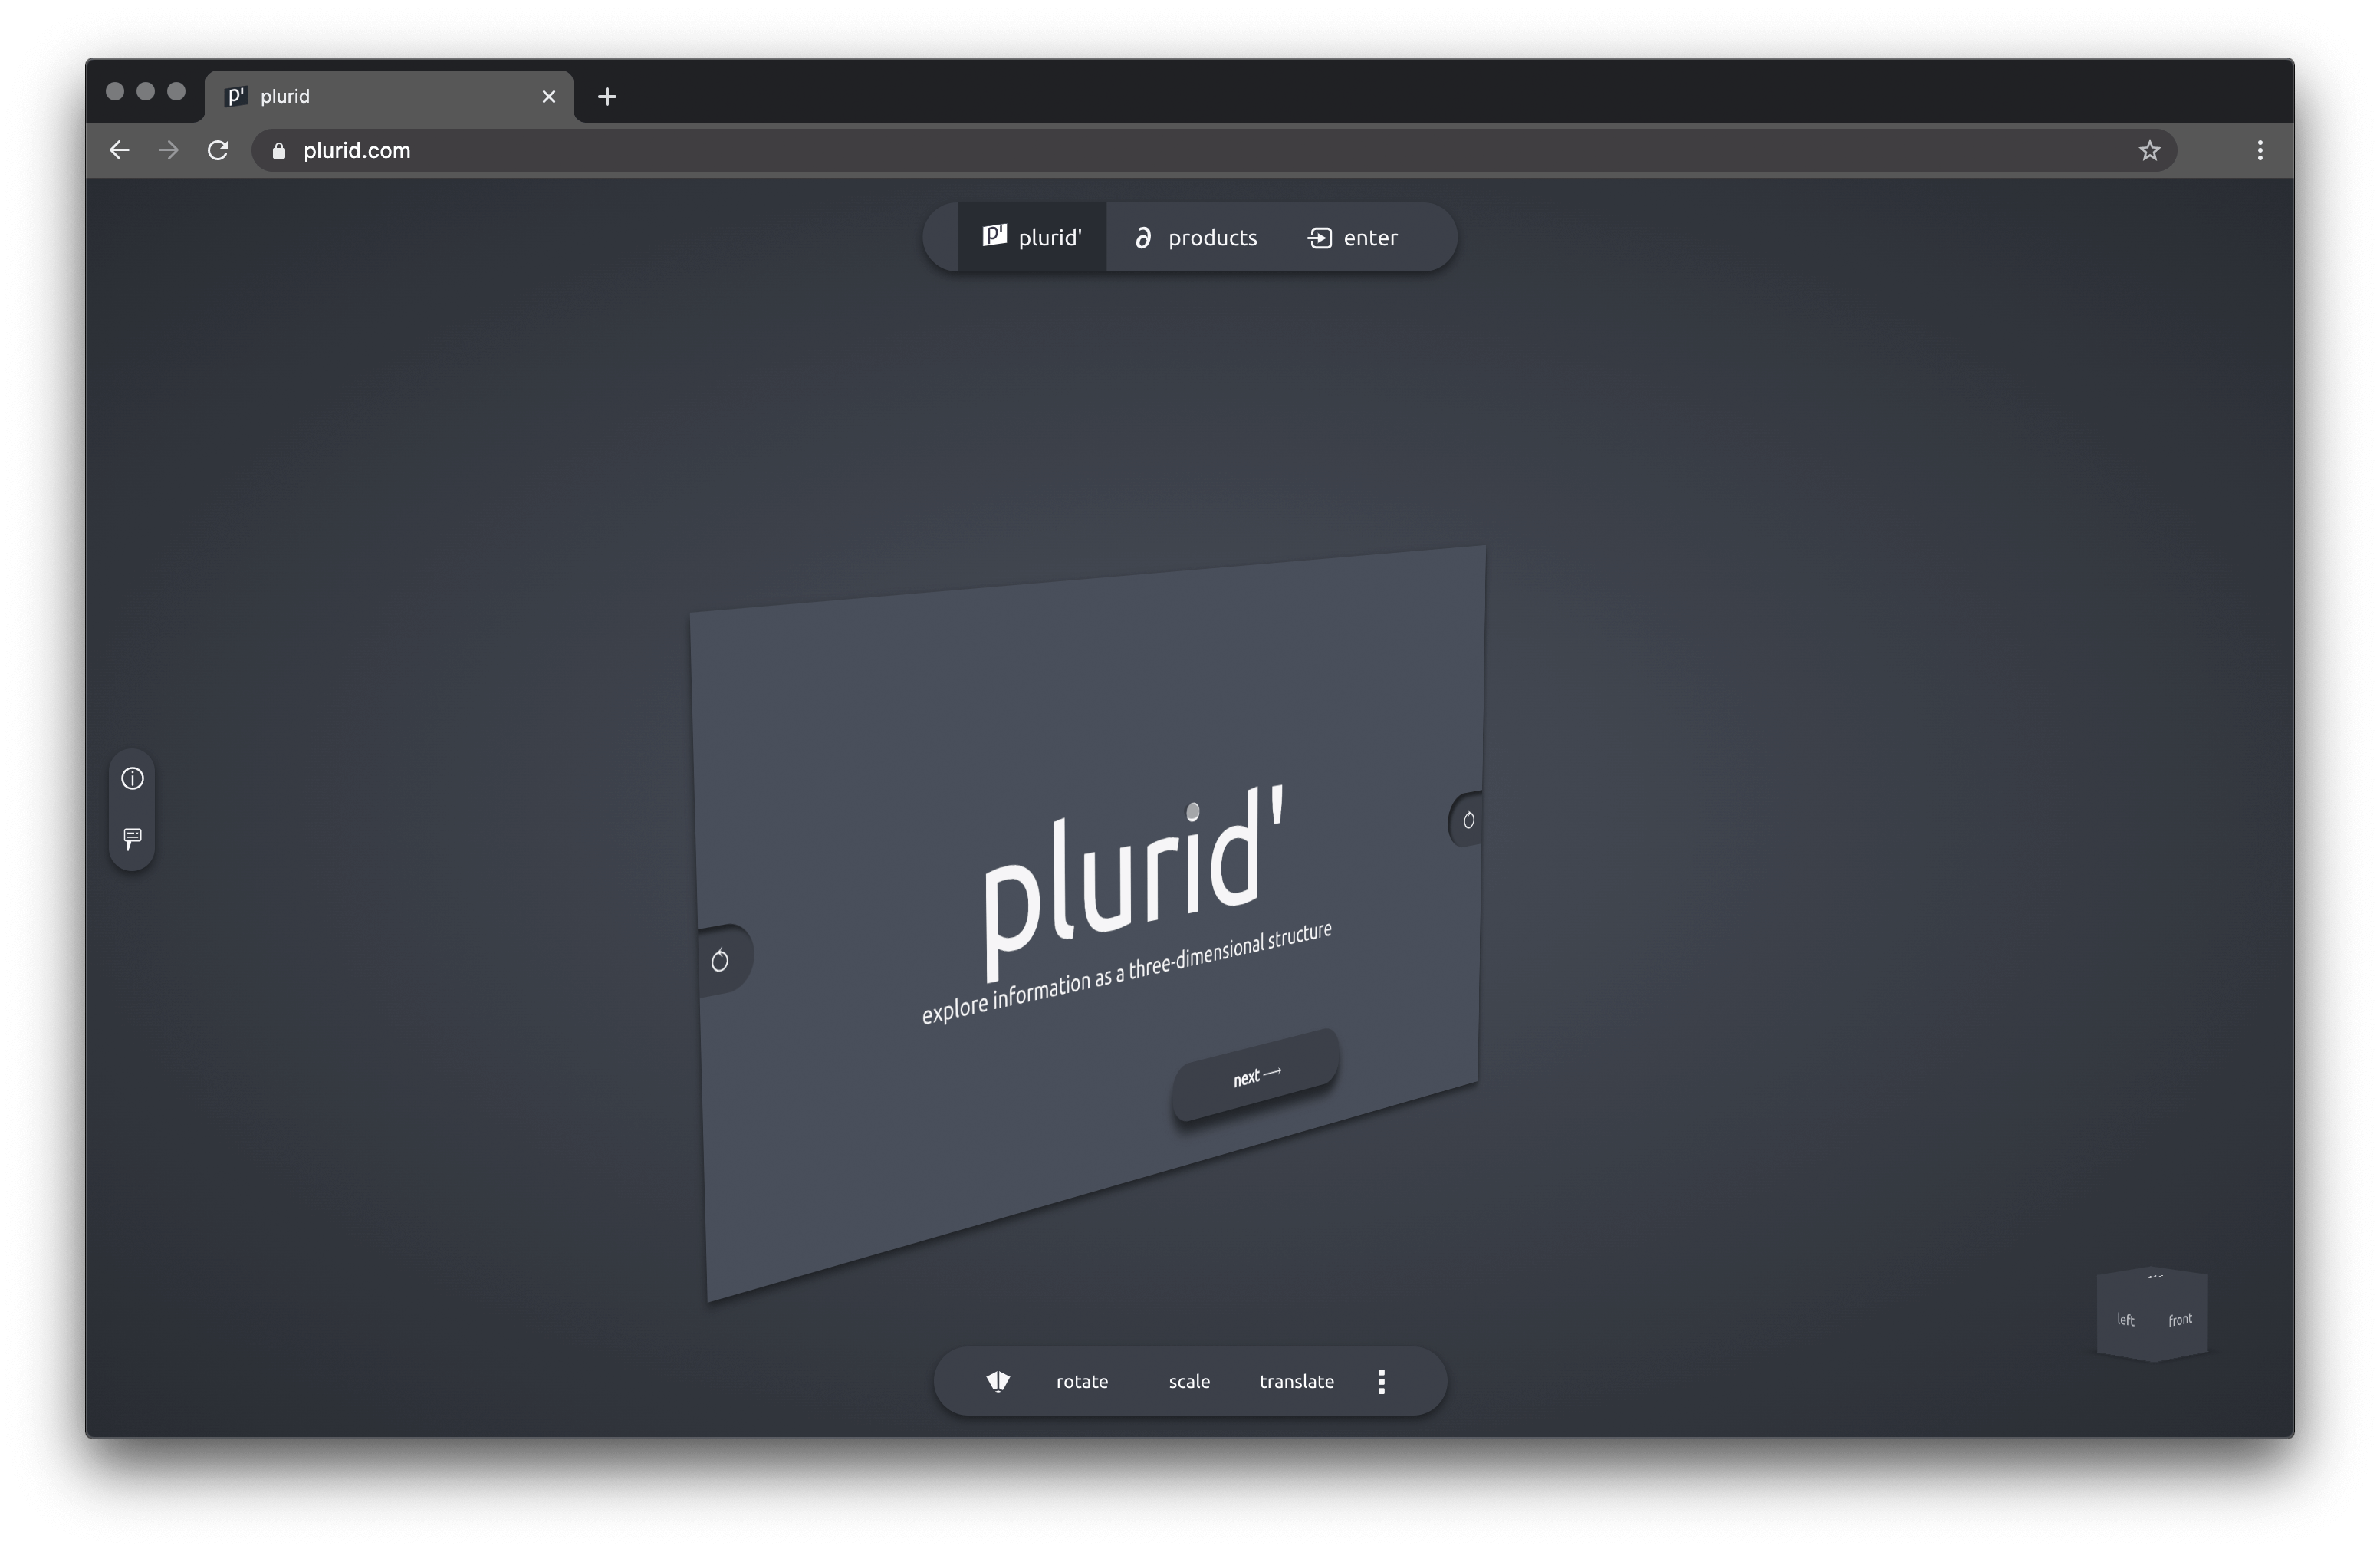 plurid explore information as a 3D structure